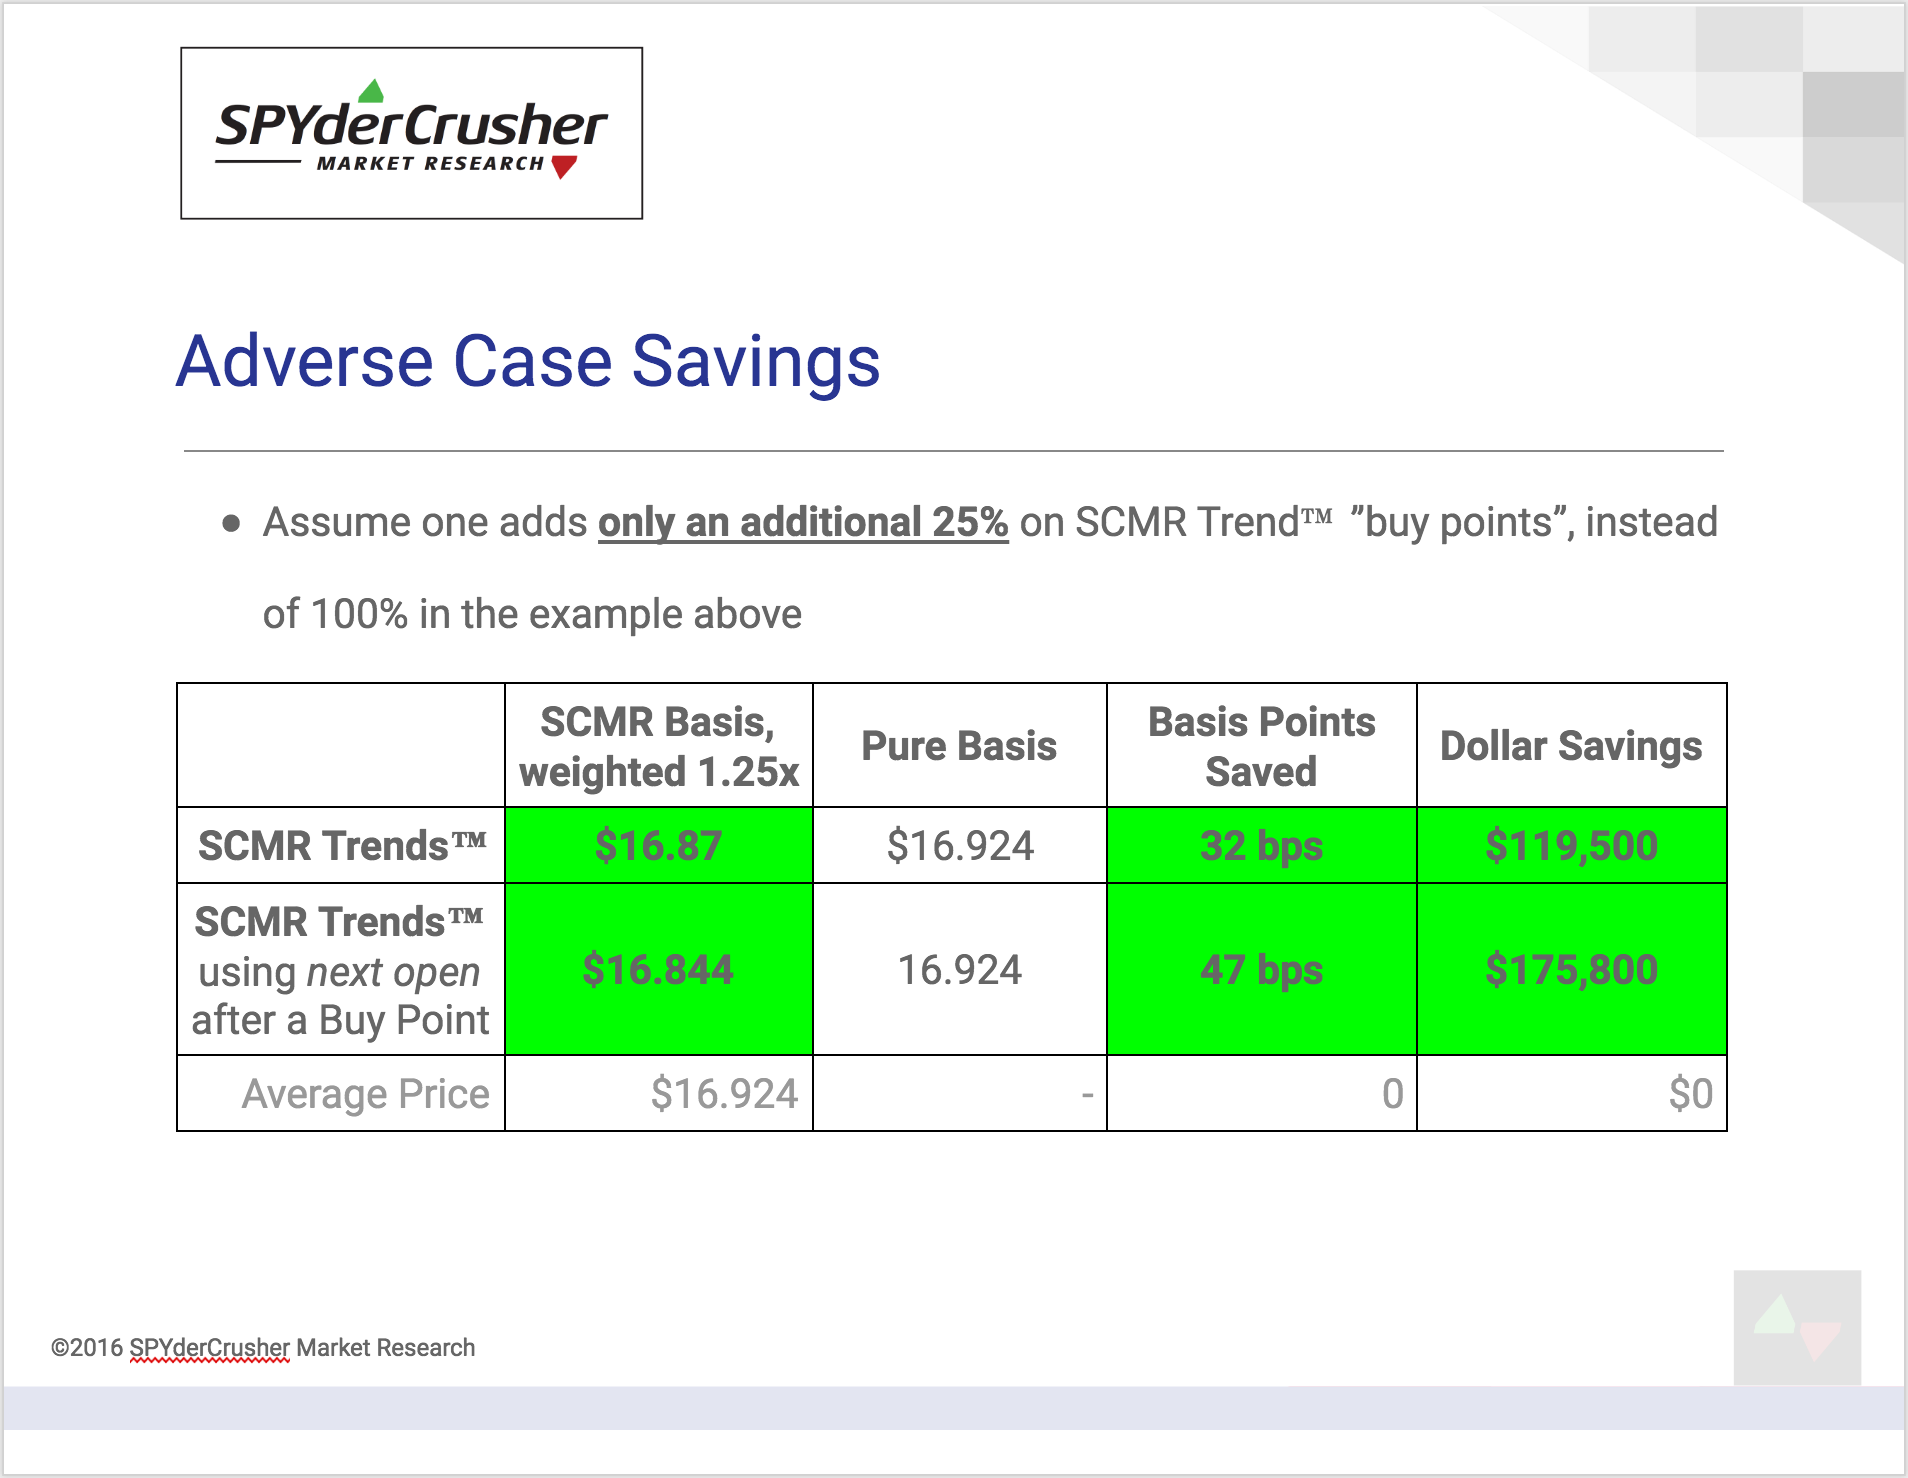 Adverse Case Savings > 30 bps